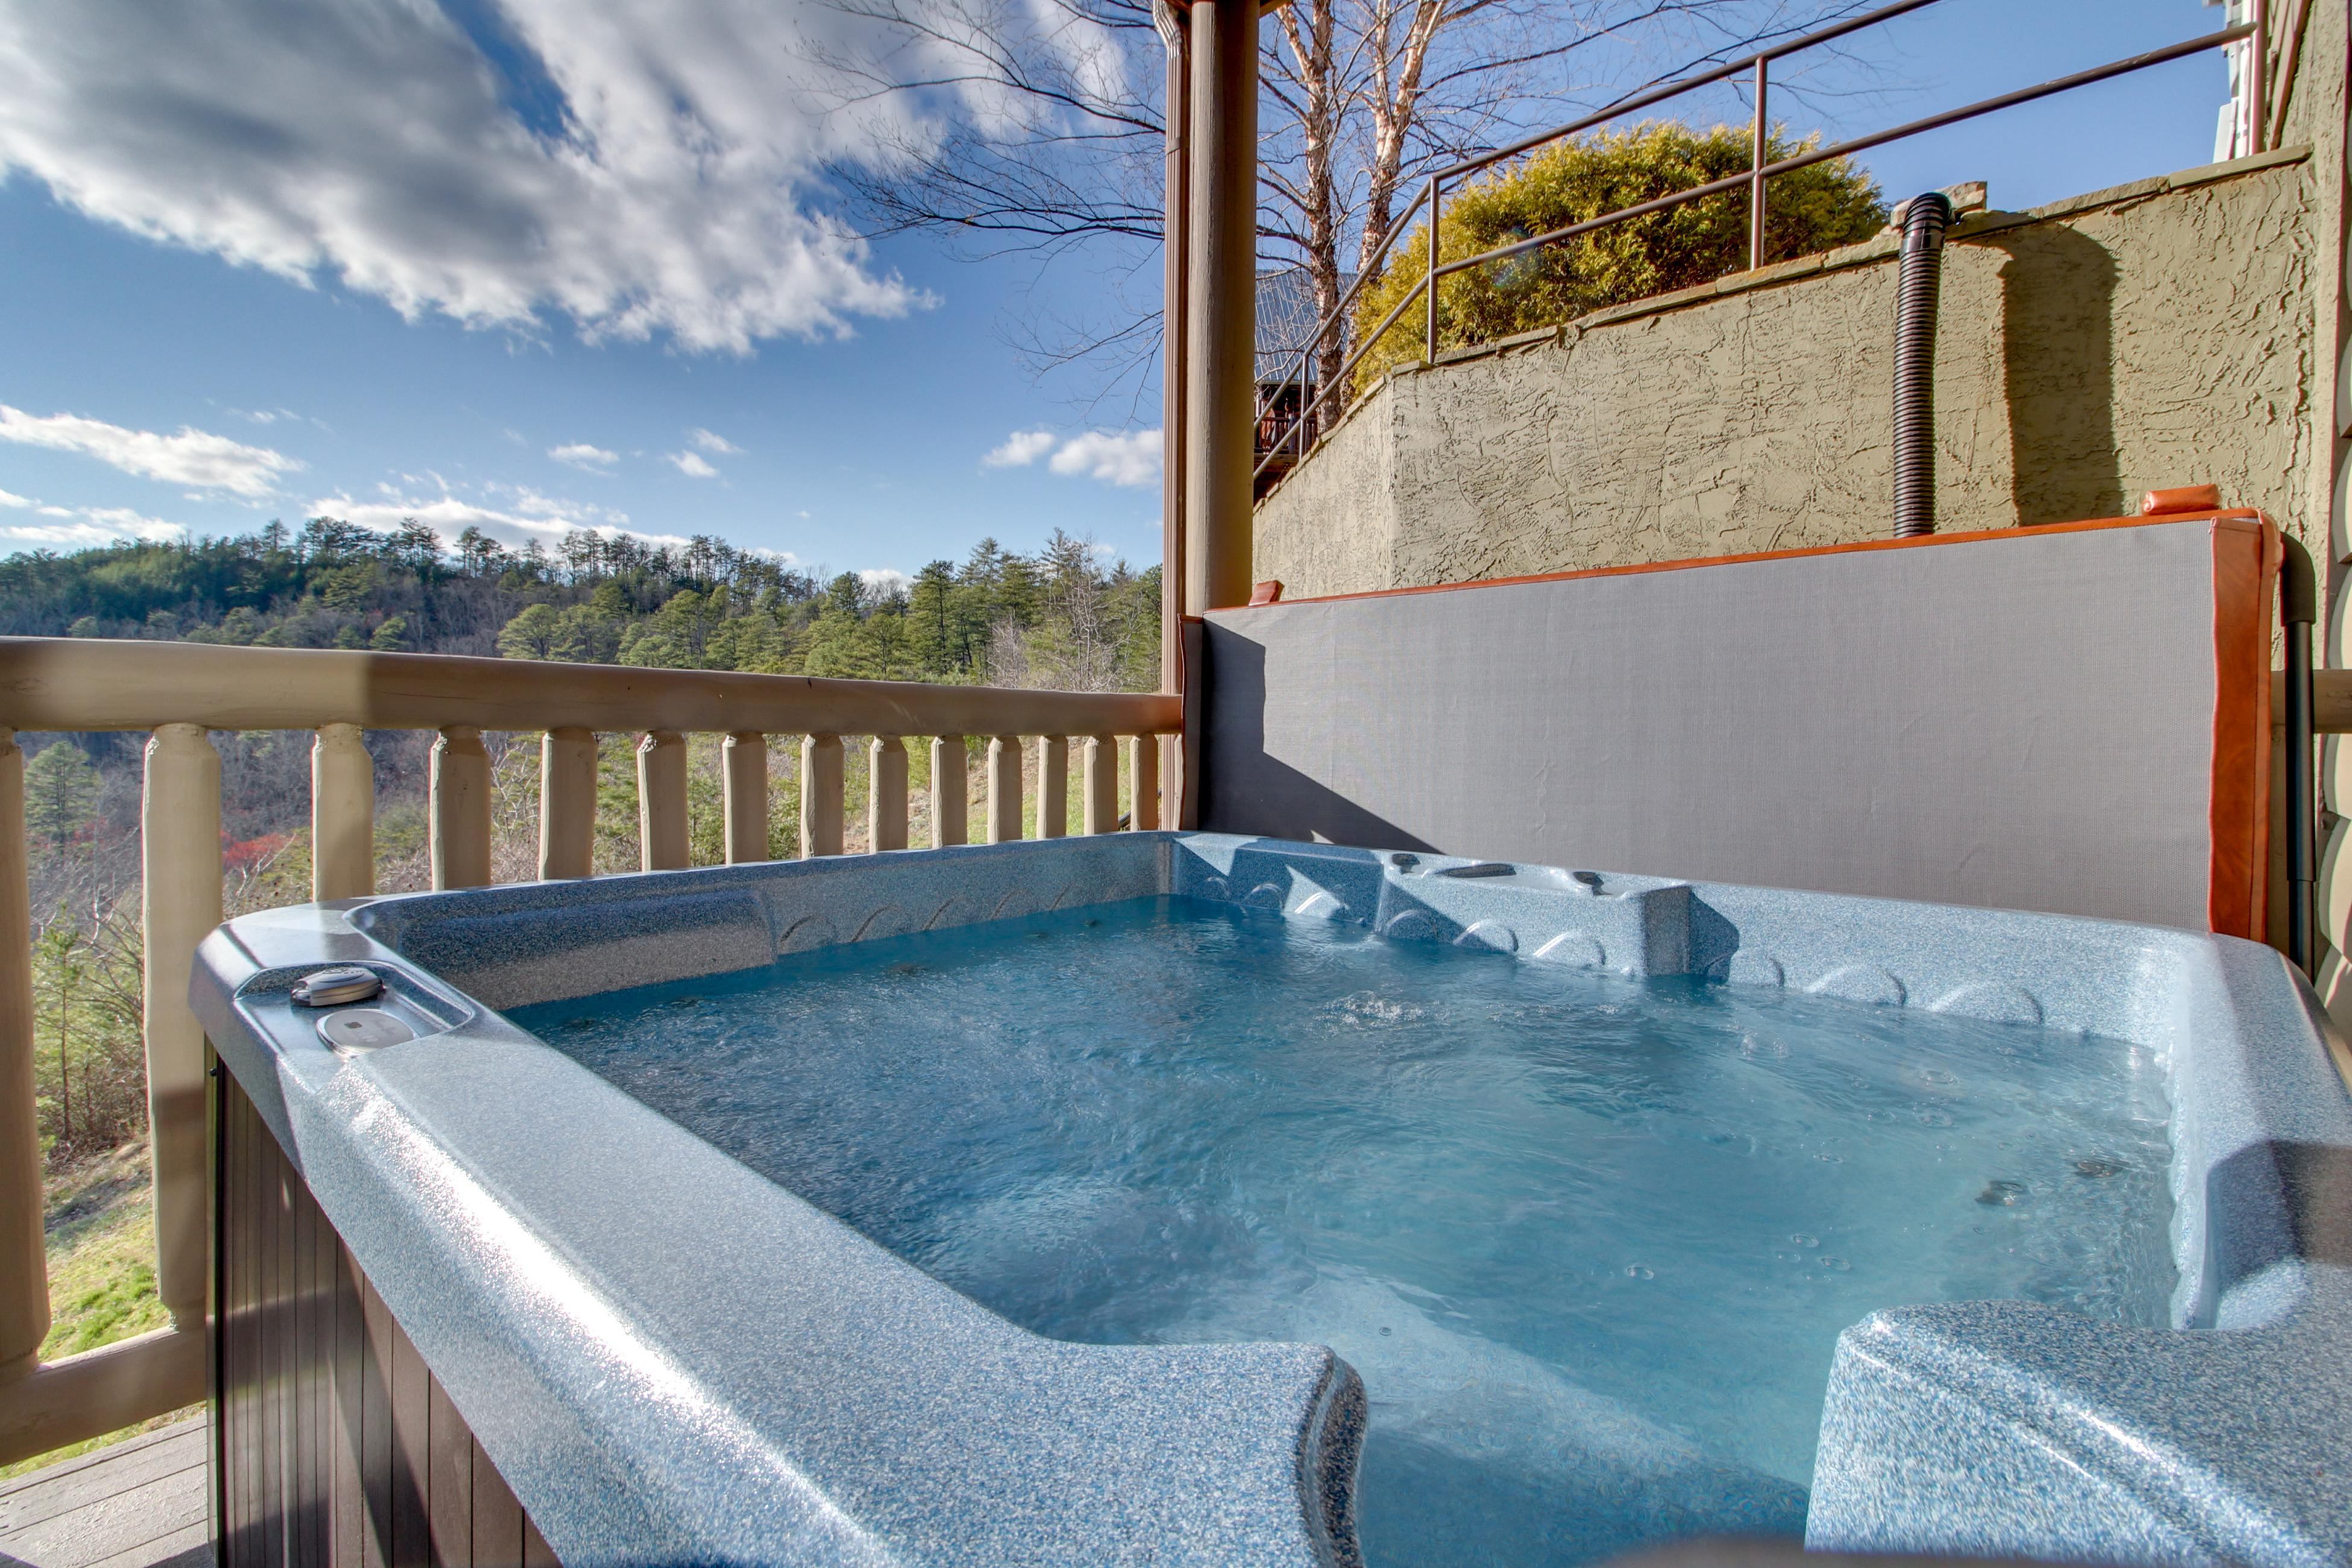 Cabin in the smokies with incredible mountain views - hot tub, private pool